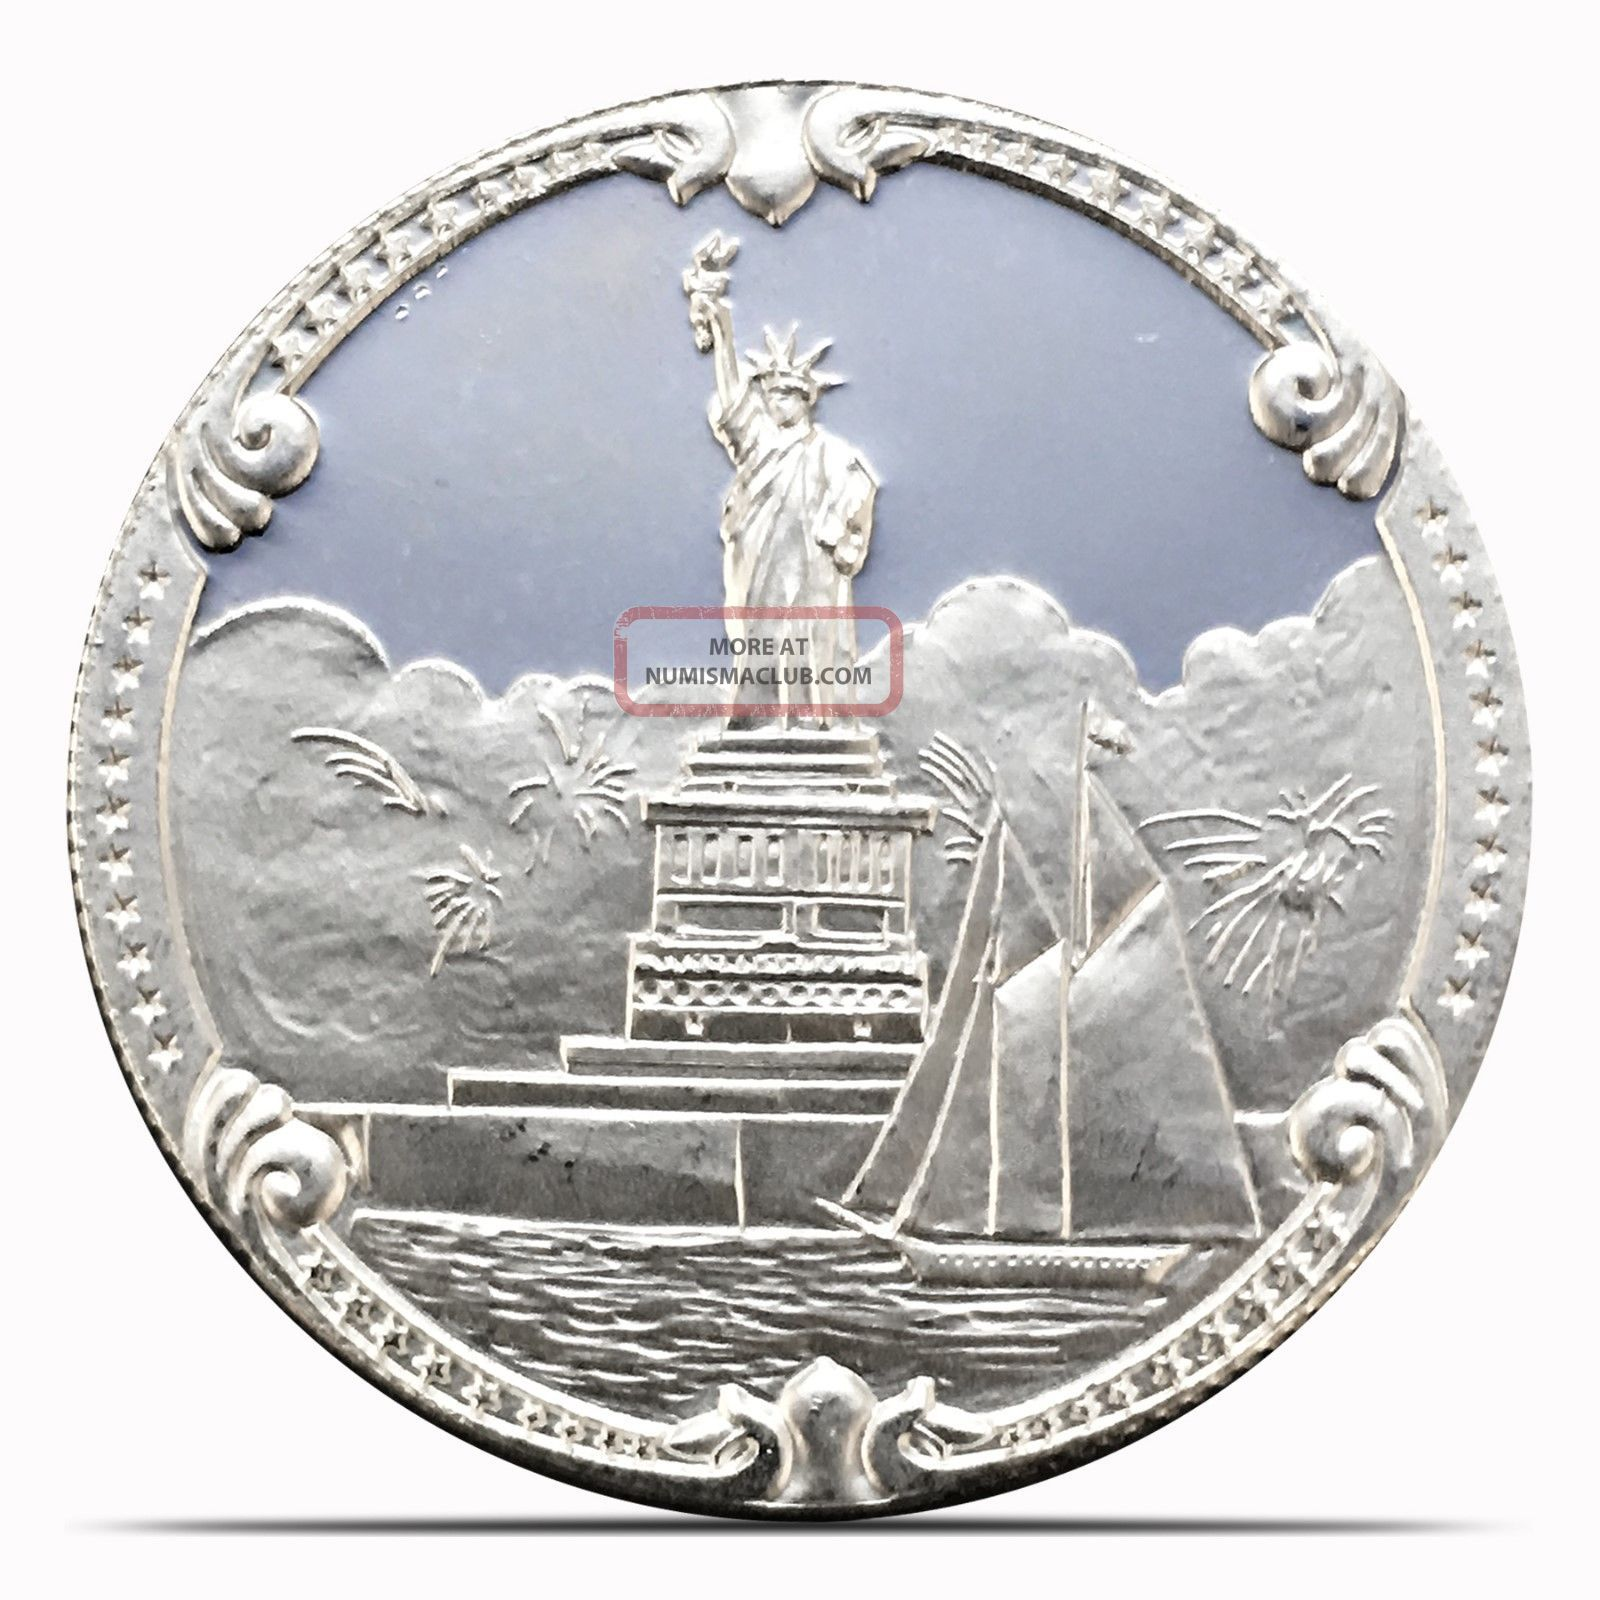 1986 Lady Liberty Series Rarites 1 Ozt.  999 Silver Coin Low Mintage (2108) Silver photo